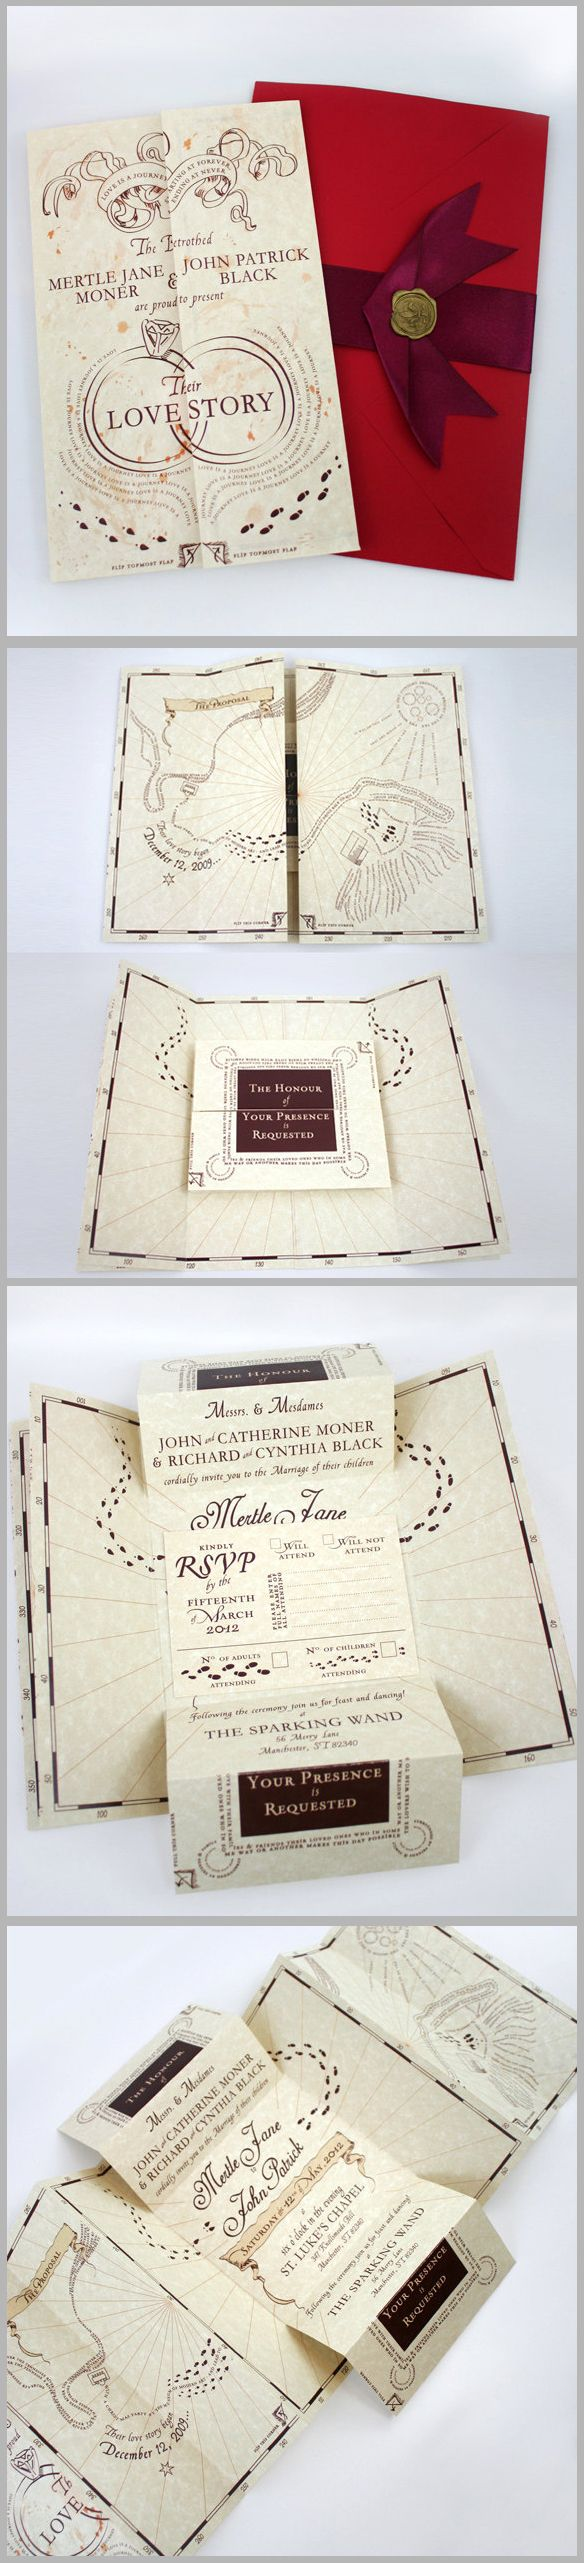 Wedding invitation designed like the Marauder's Map. People make the most amazing things!